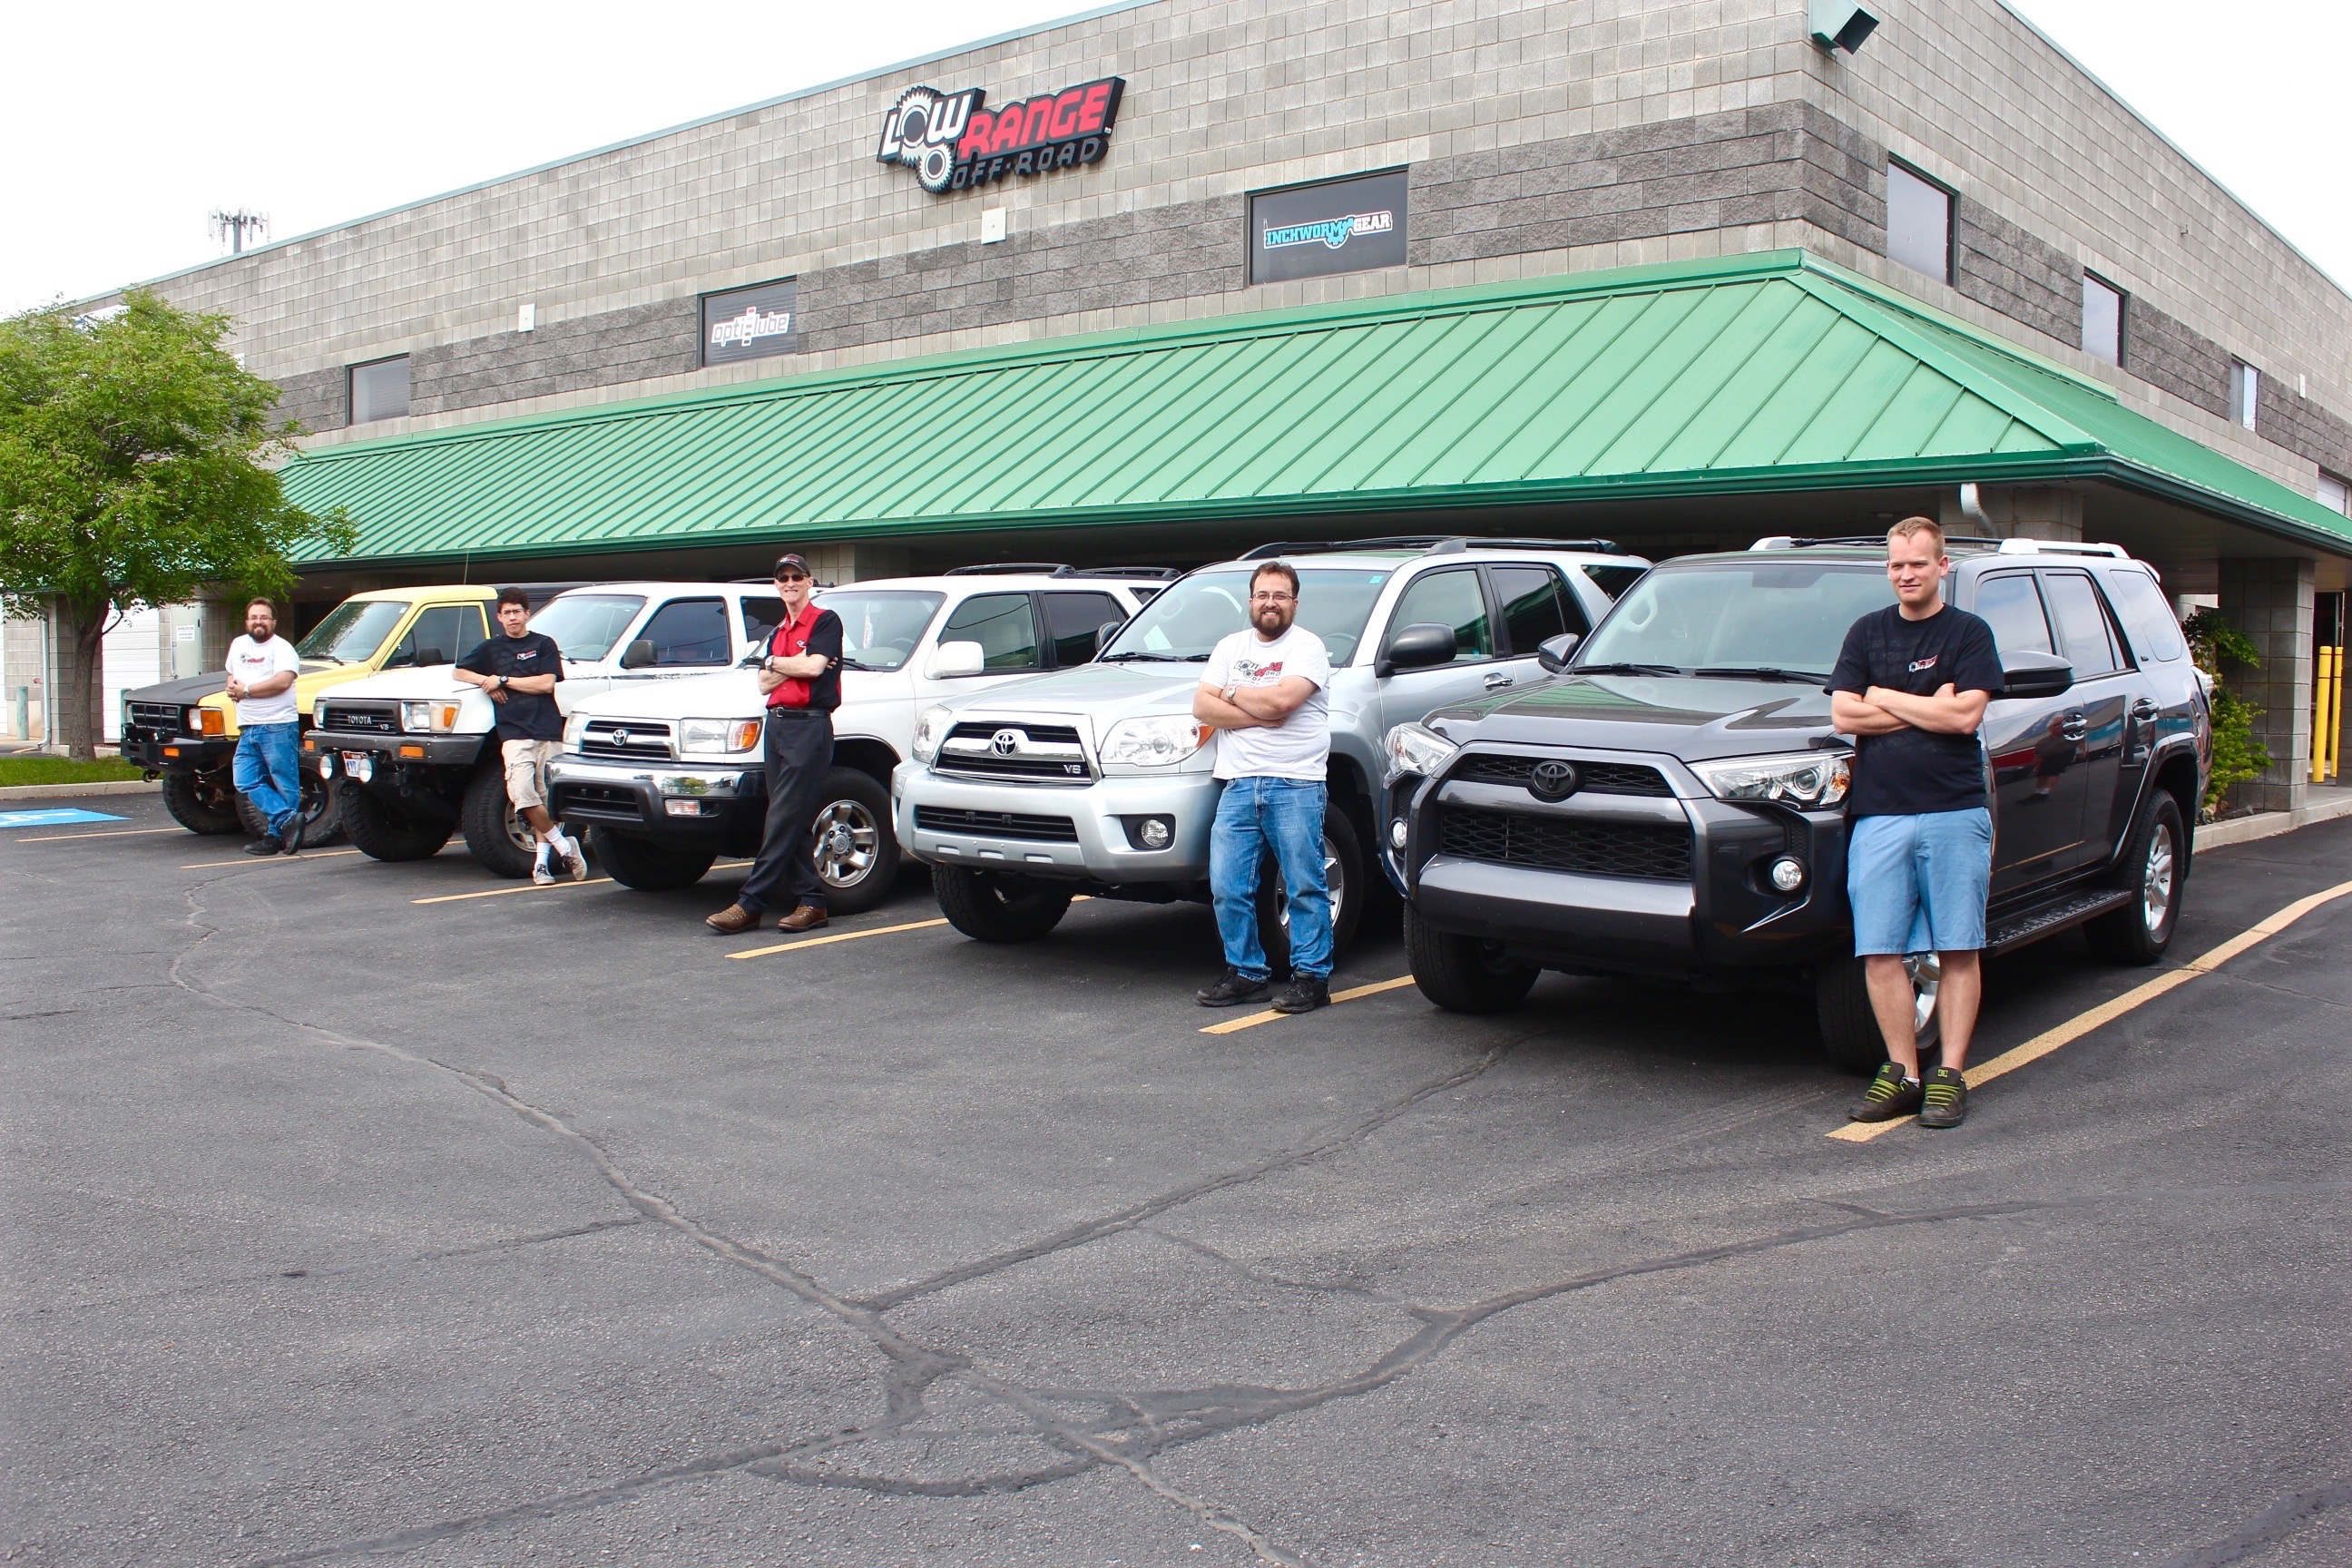 5 Generations of Toyota 4Runners in Front of Low Range Off-Road Headquarters in Orem, Utah, USA